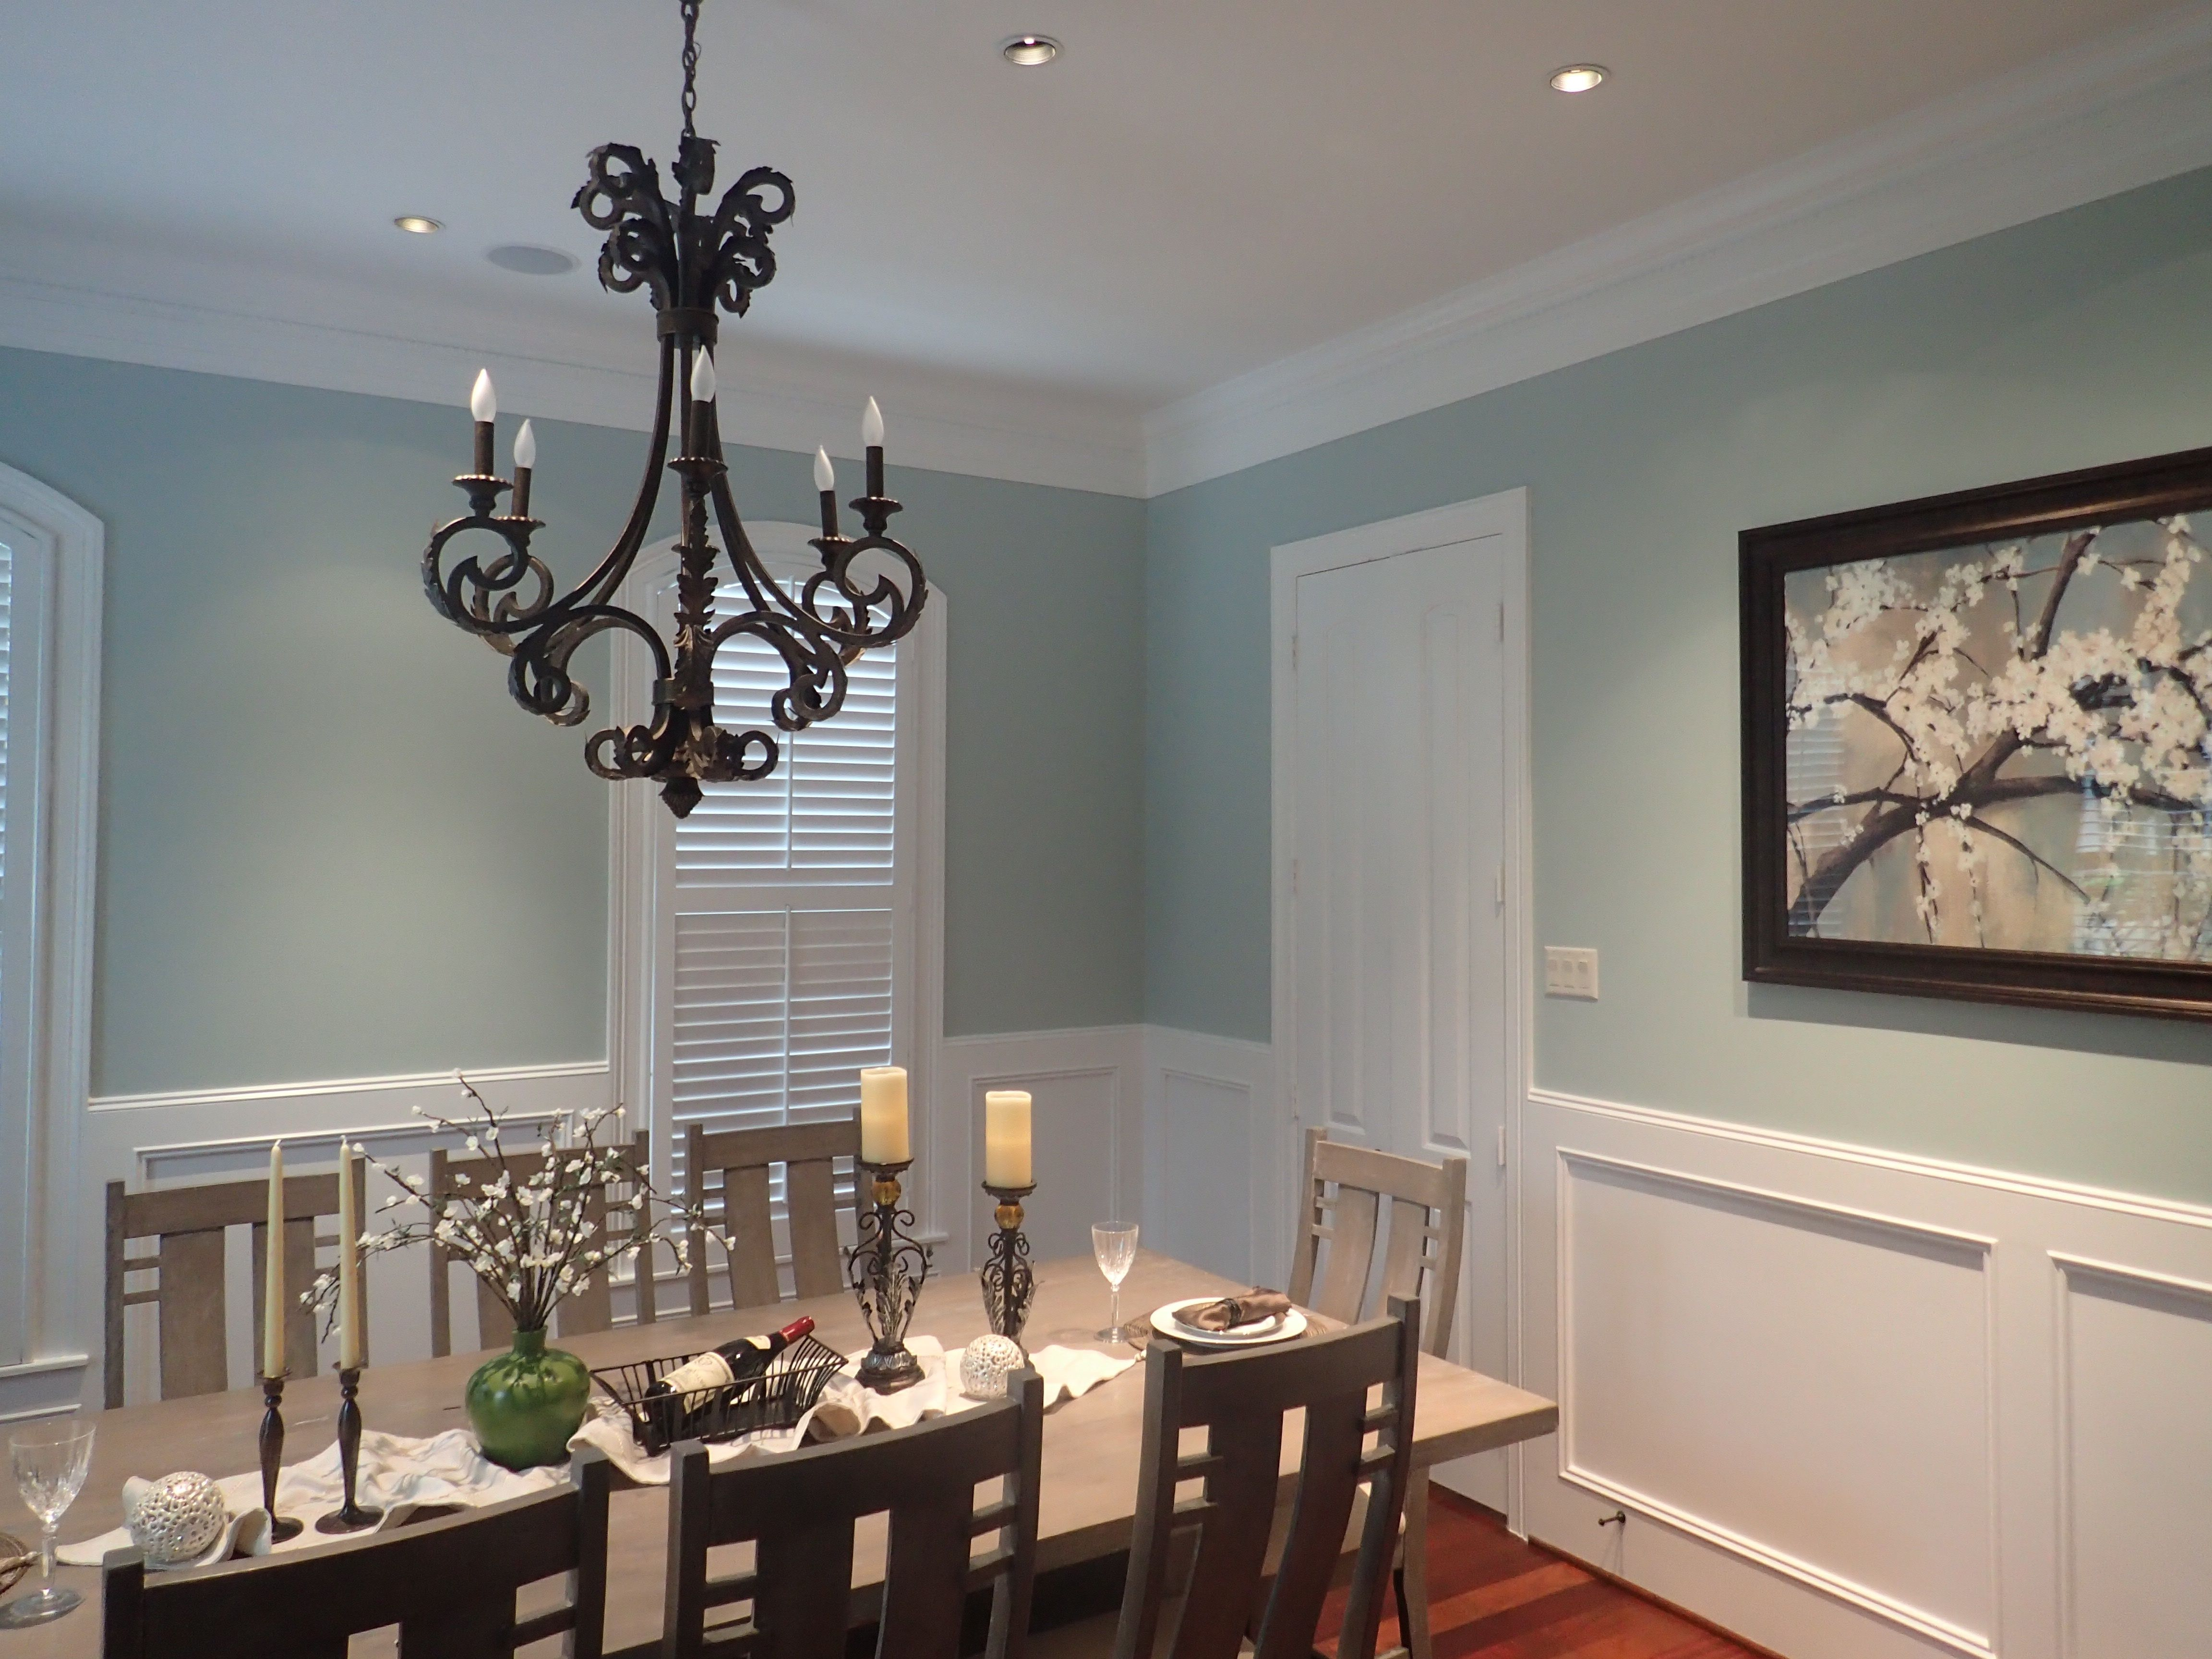 Dining room sherwin williams copen blue for the home for Sherwin williams living room ideas